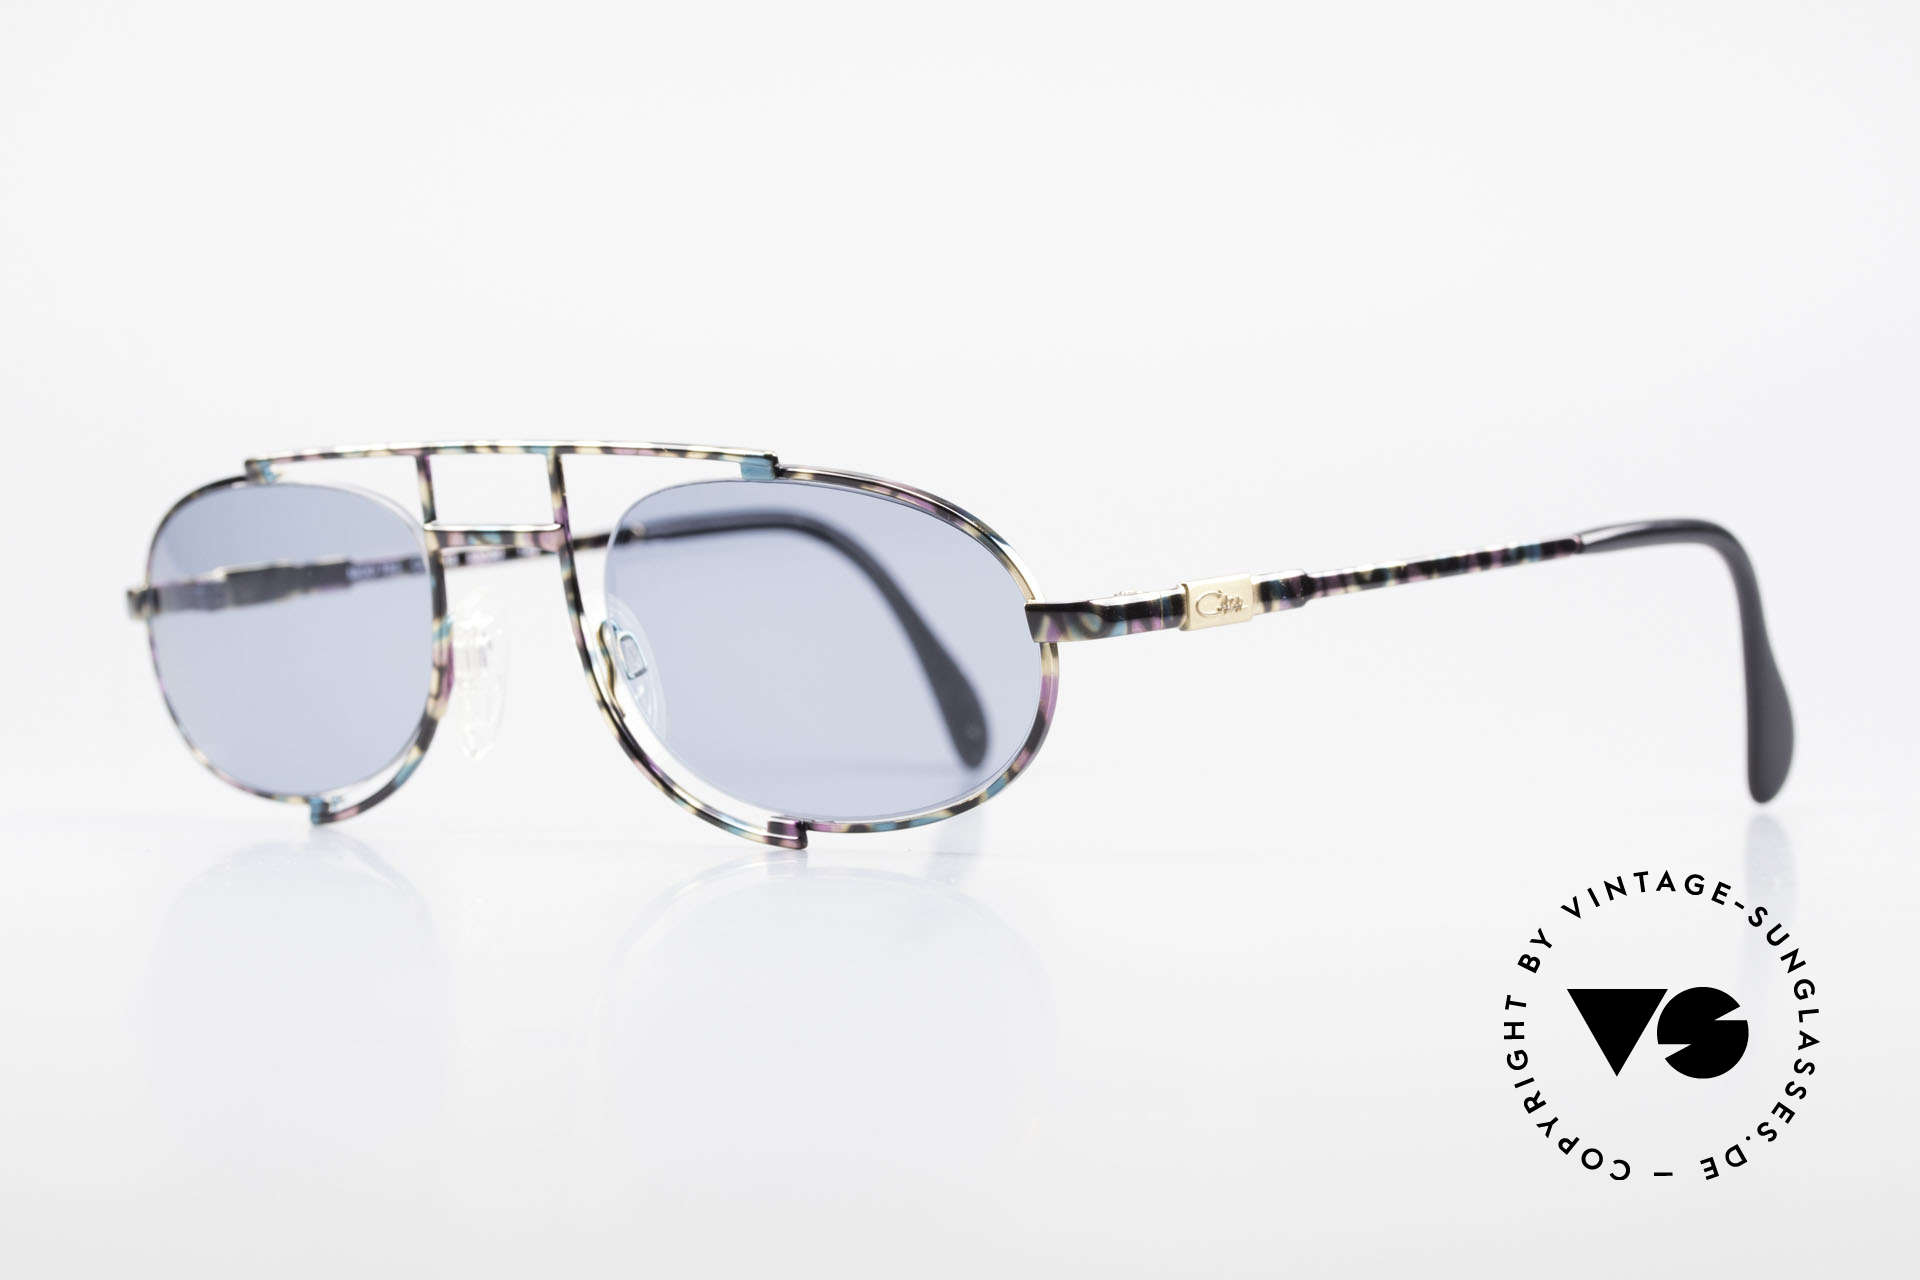 Cazal 753 Oval 90's Designer Sunglasses, a true eye-catcher designed by Mr. CAri ZALloni, Made for Men